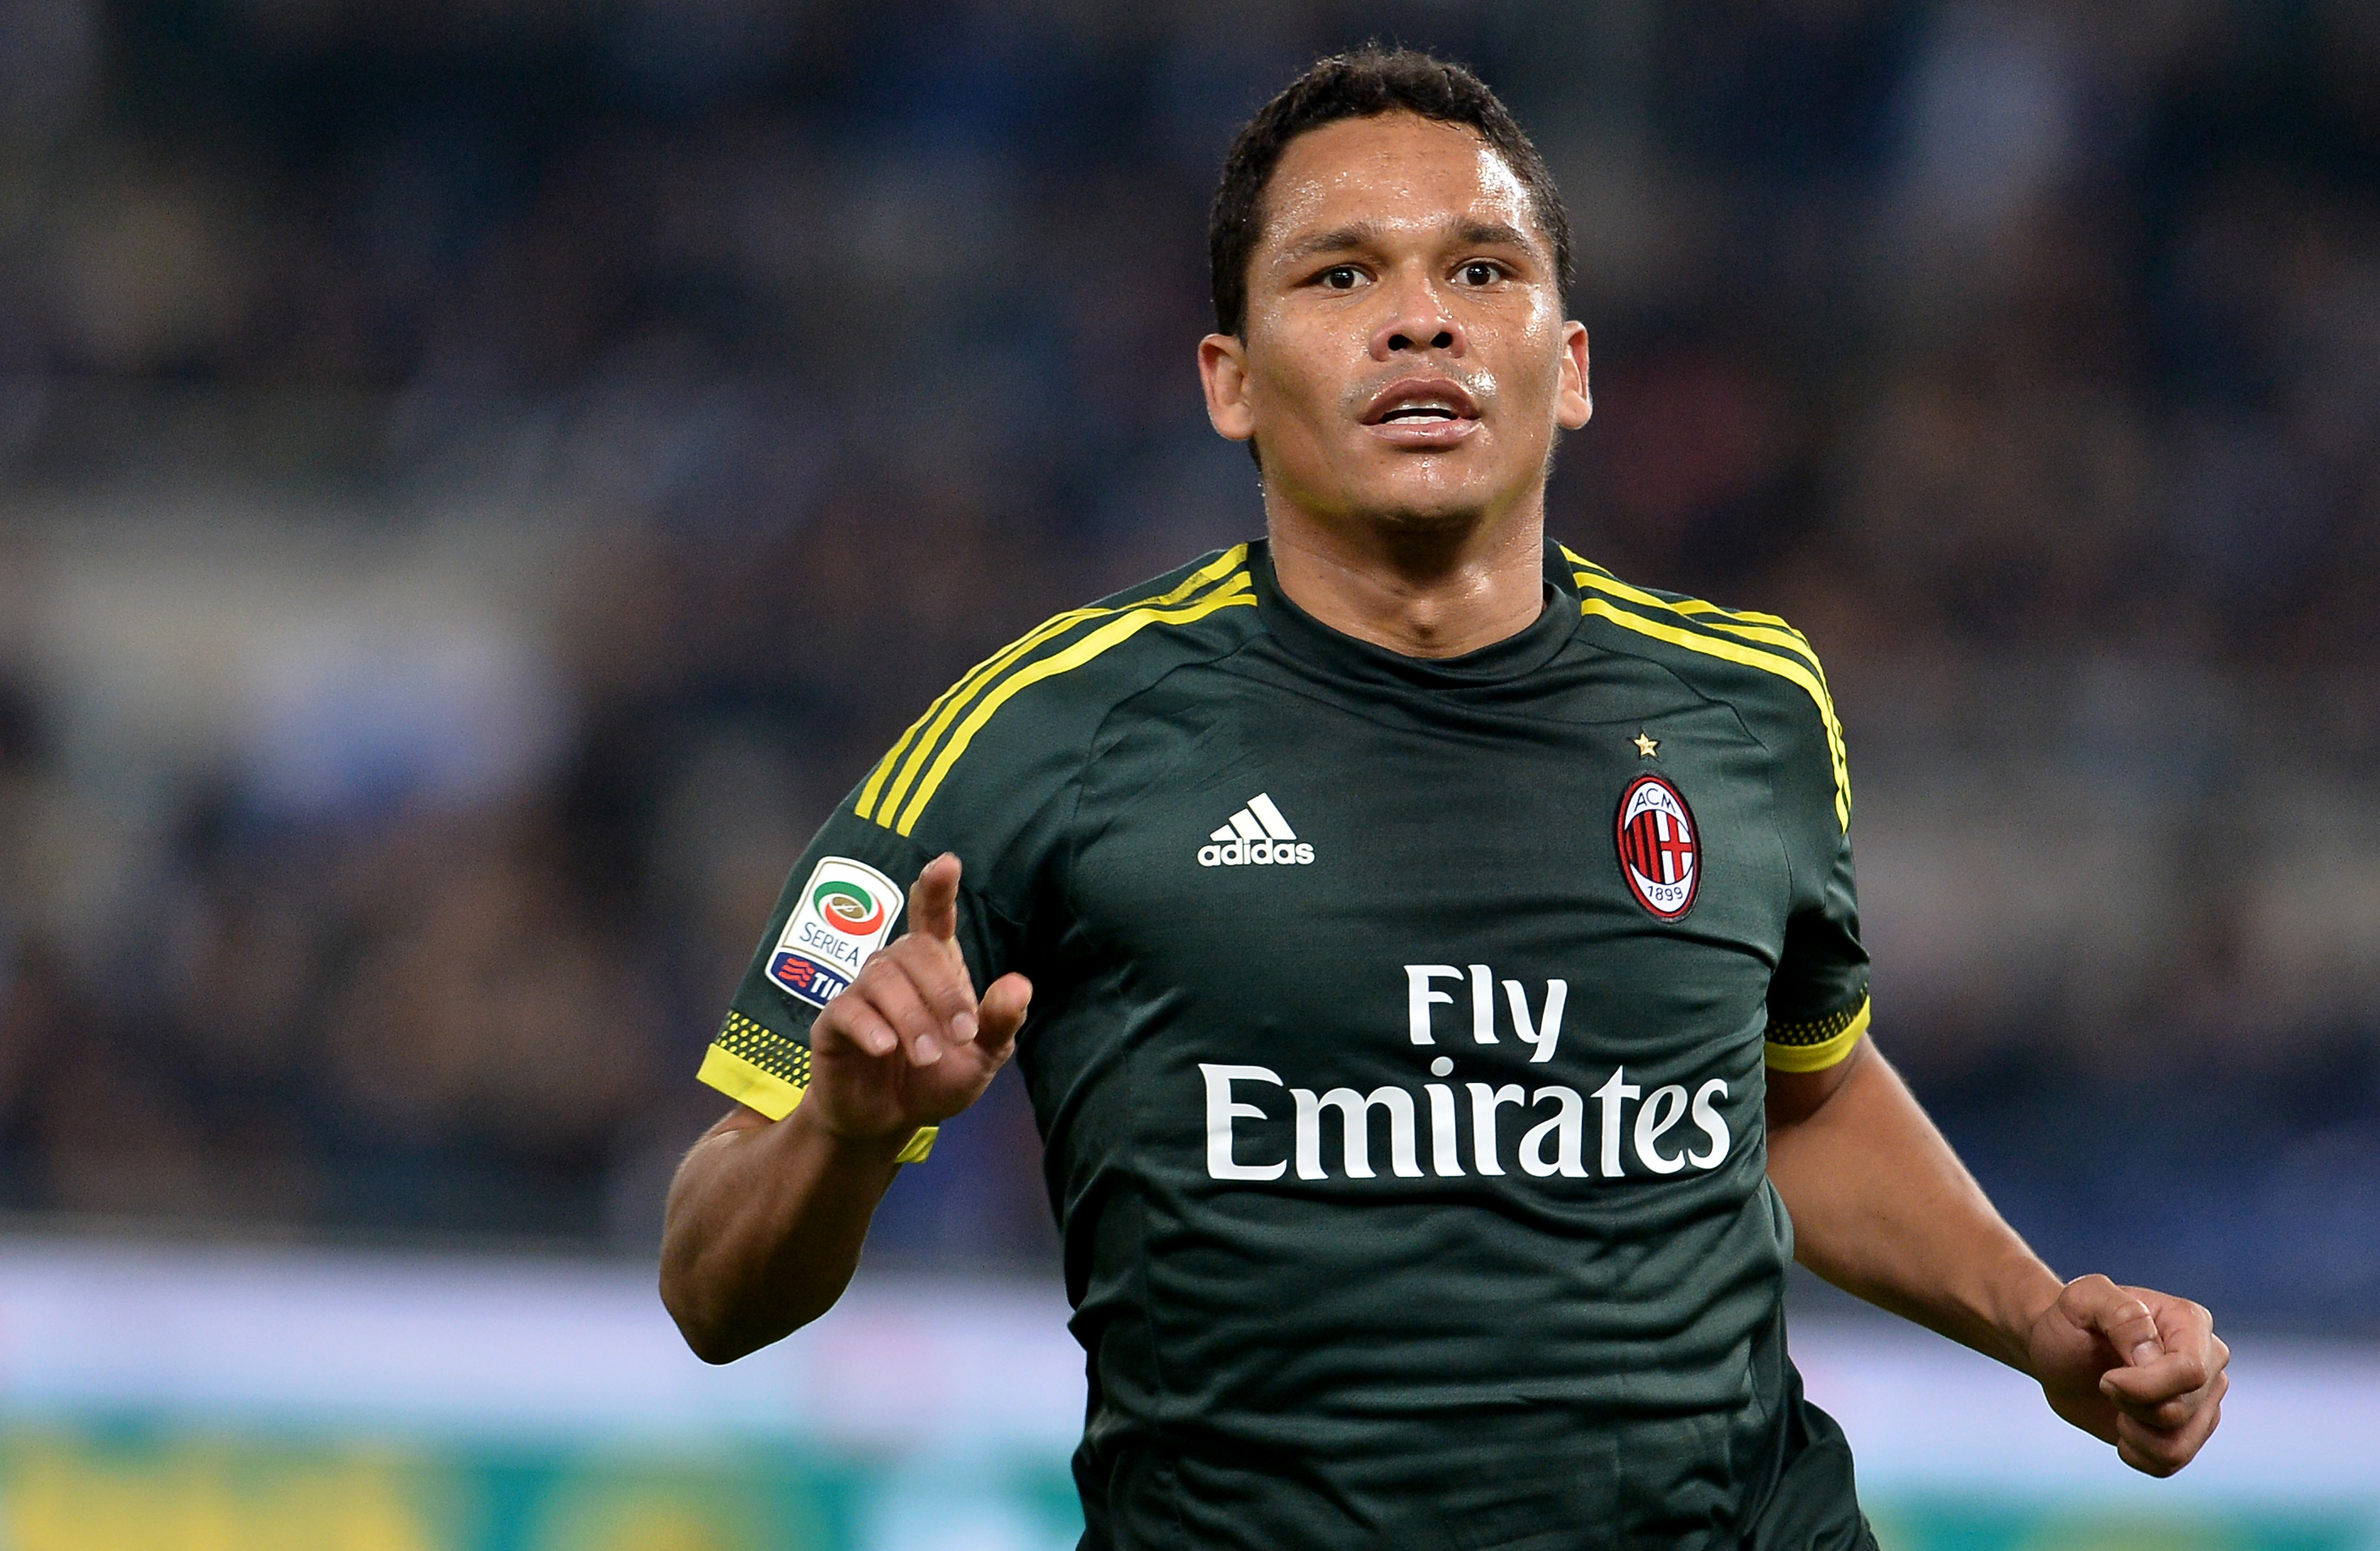 Transfer news: Mohamed Elneny to Arsenal delayed, Liverpool back in for Luciano Vietto, Chelsea eye Carlos Bacca – reports